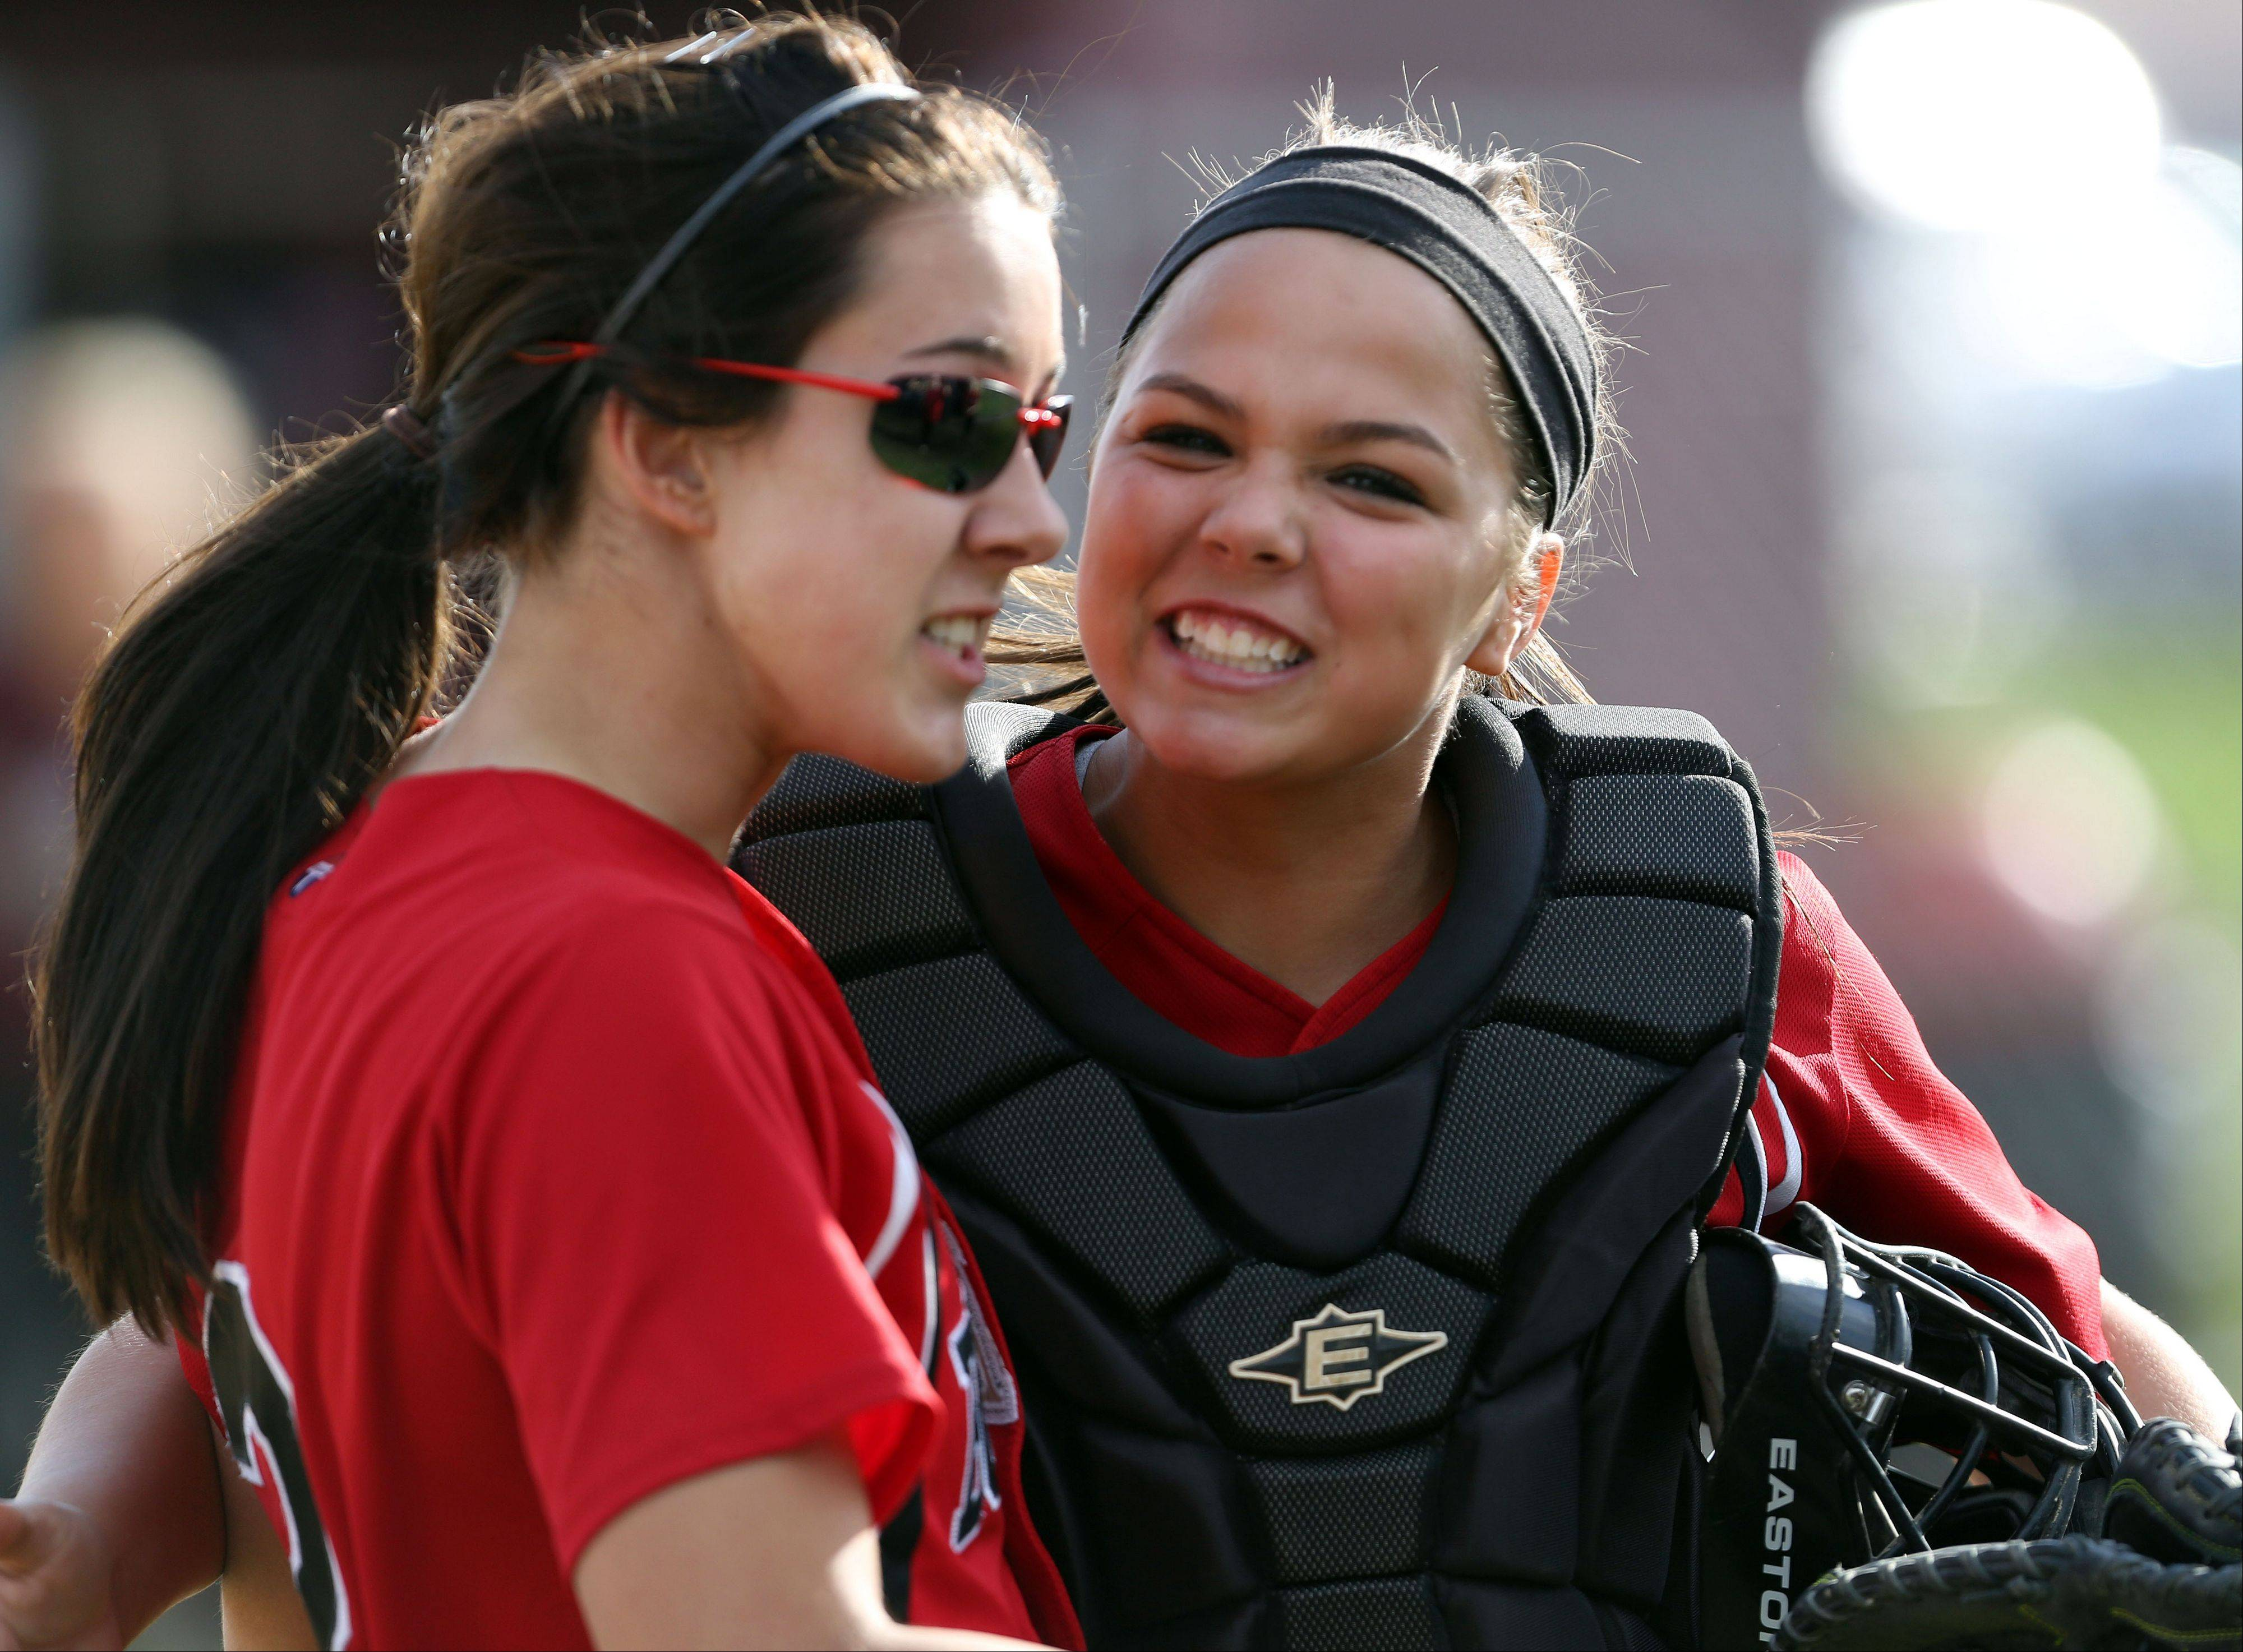 Grant catcher Kayla Uhwat, right, celebrates with pitcher Caitlyn Moran during the NSC championship game Wednesday at Zion-Benton.